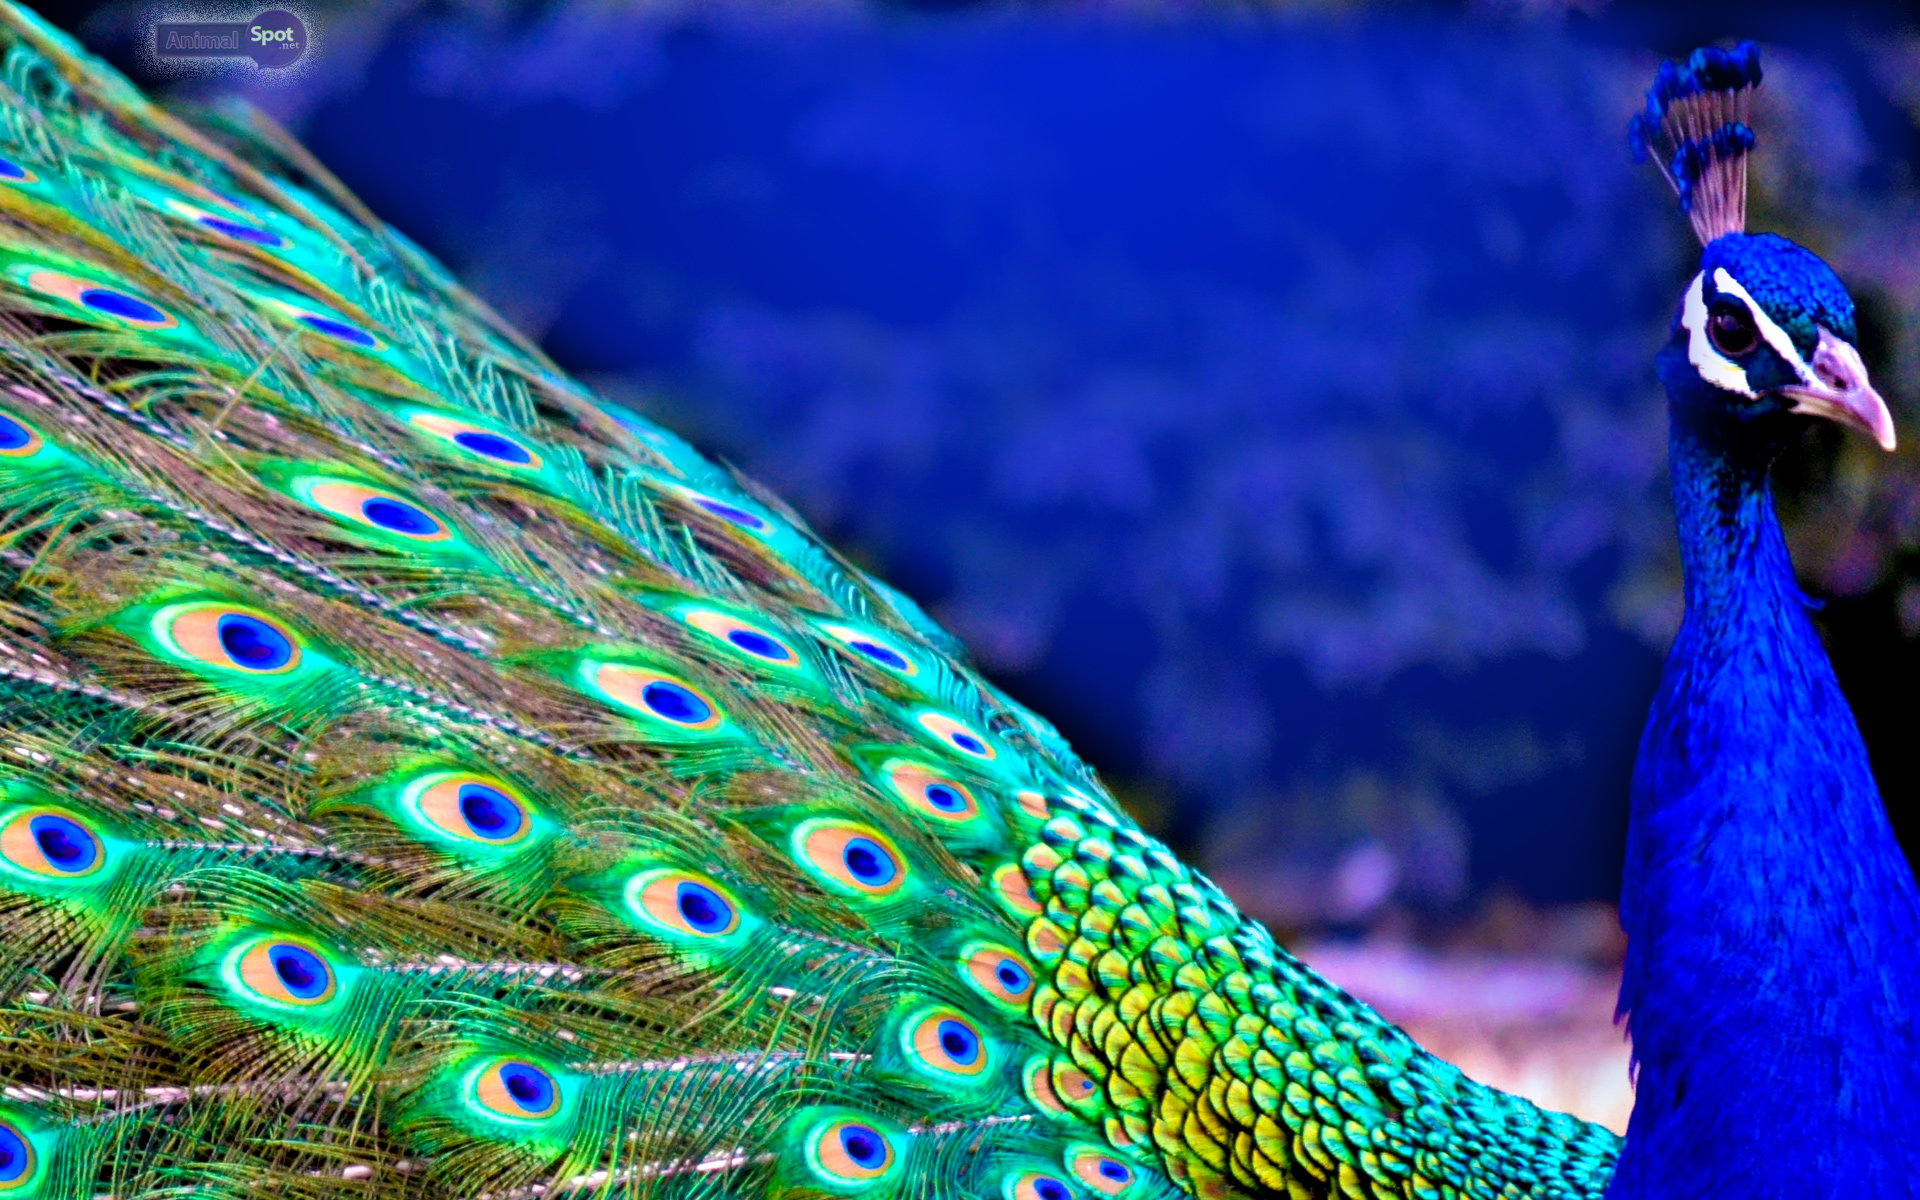 Peacock Feather Wallpaper